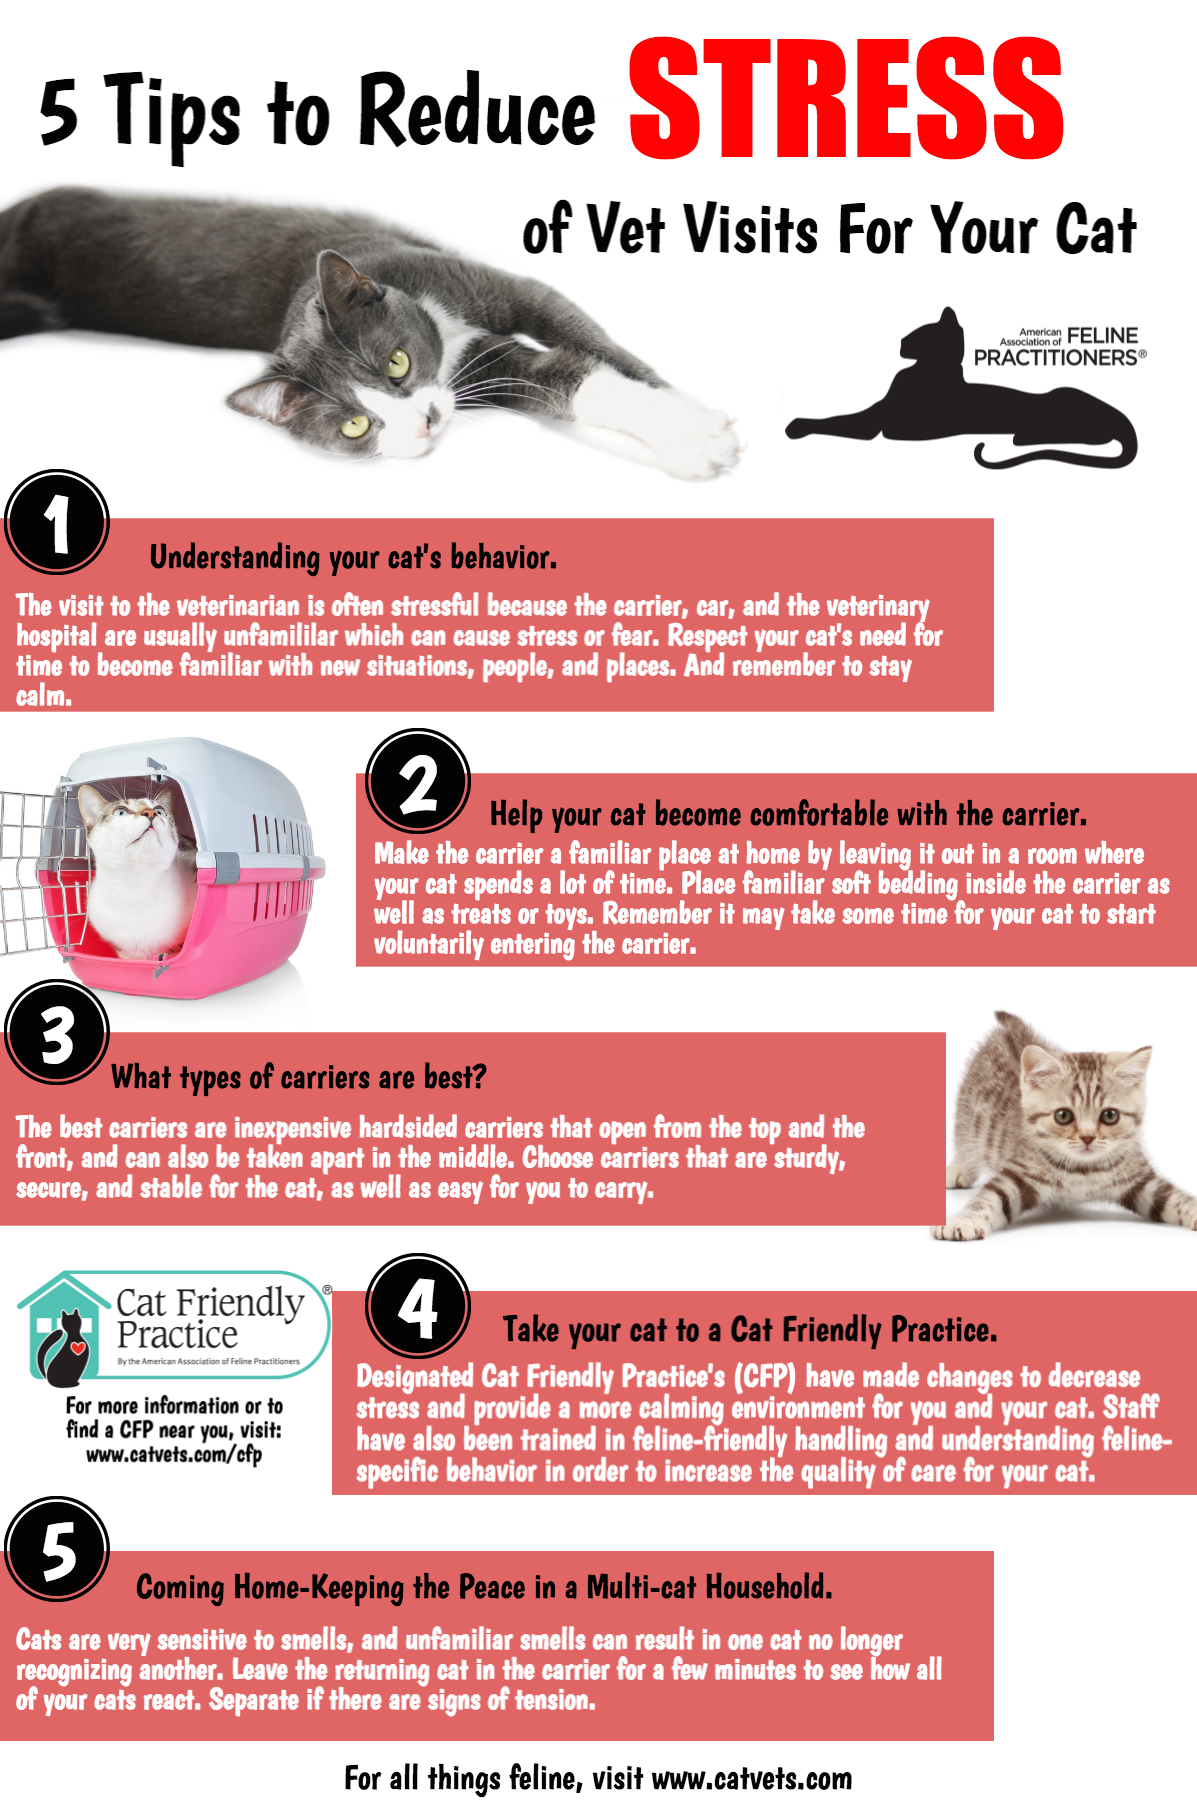 5 Tips to Reduce Stress of Vet Visits for Your Cat | Bloor ...